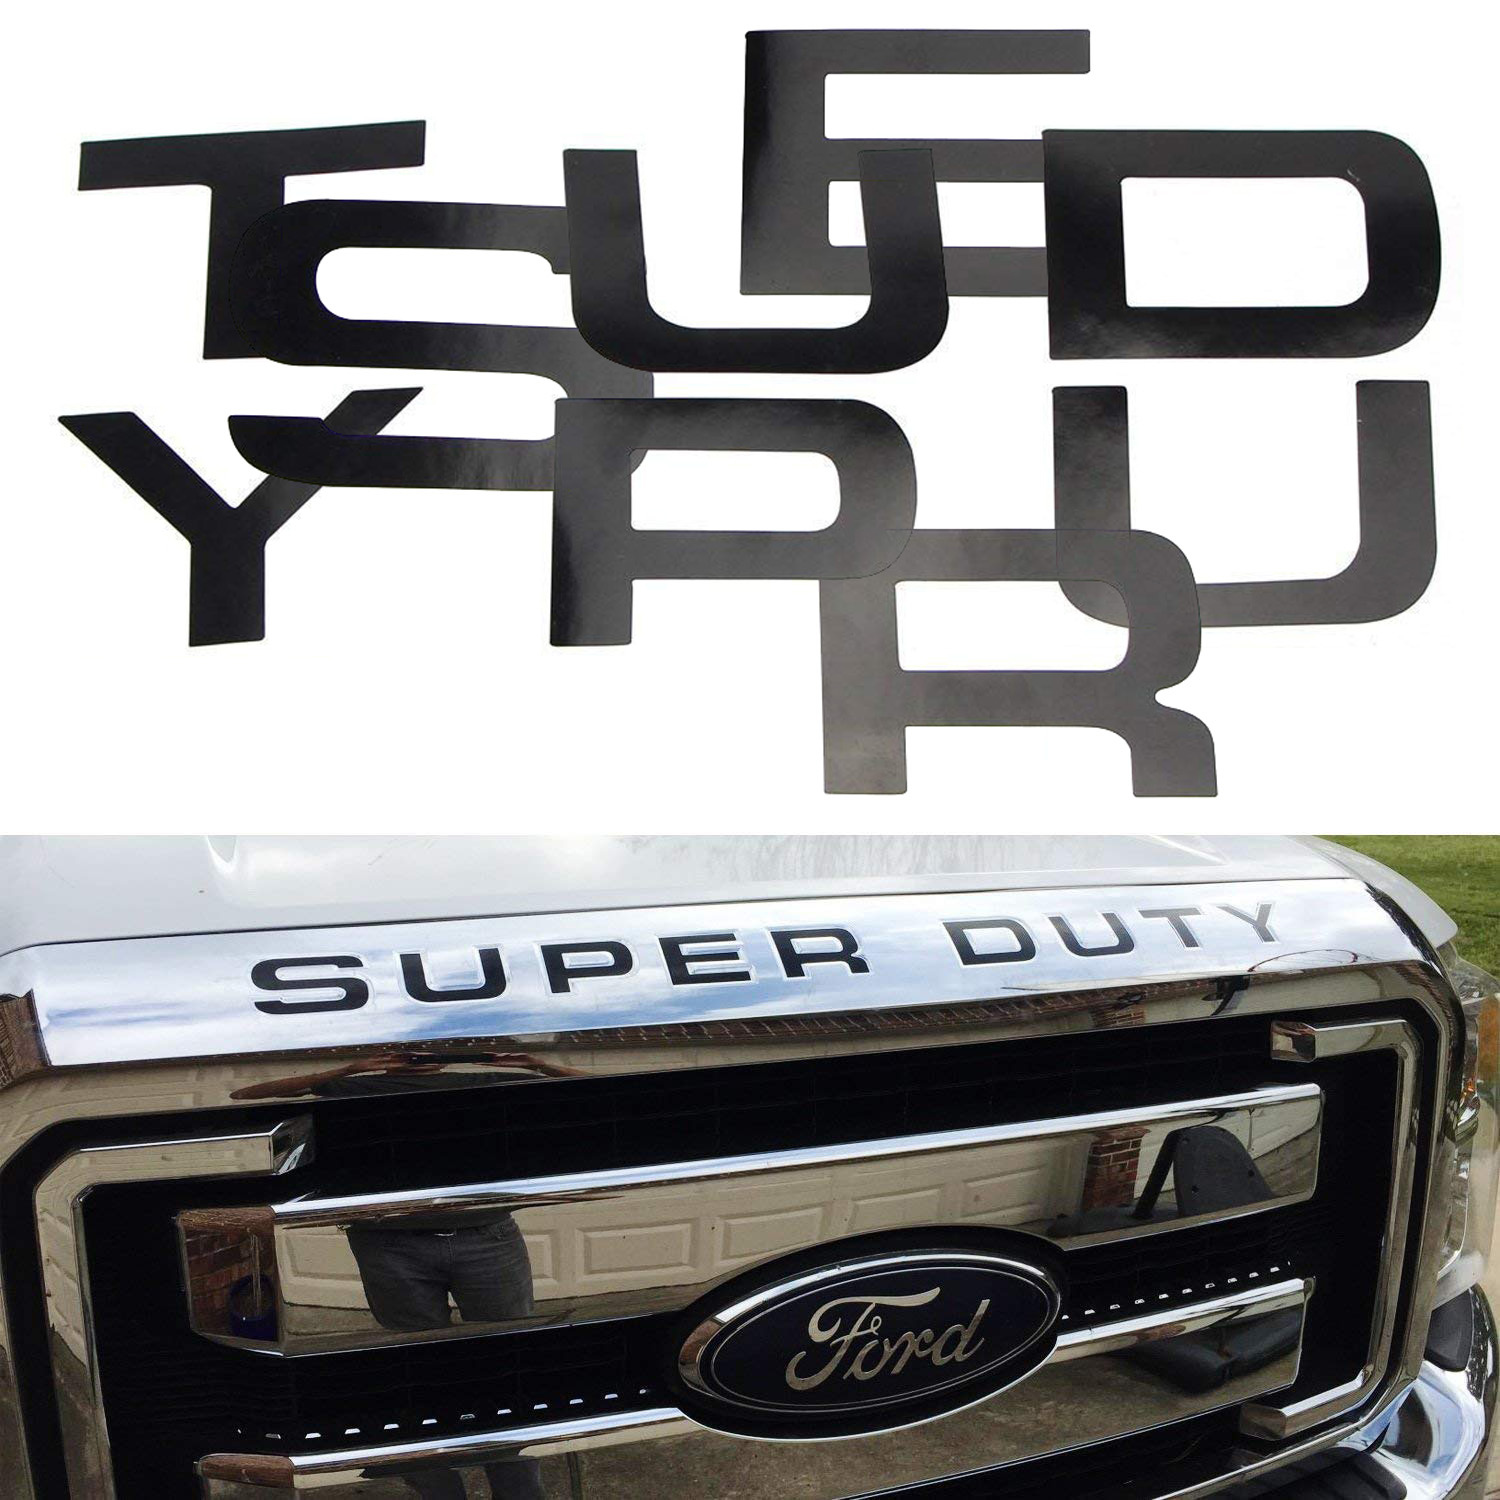 Glossy Black Vinyl Letters Insert Decal For 2008-2016 Ford Super Duty Front Hood